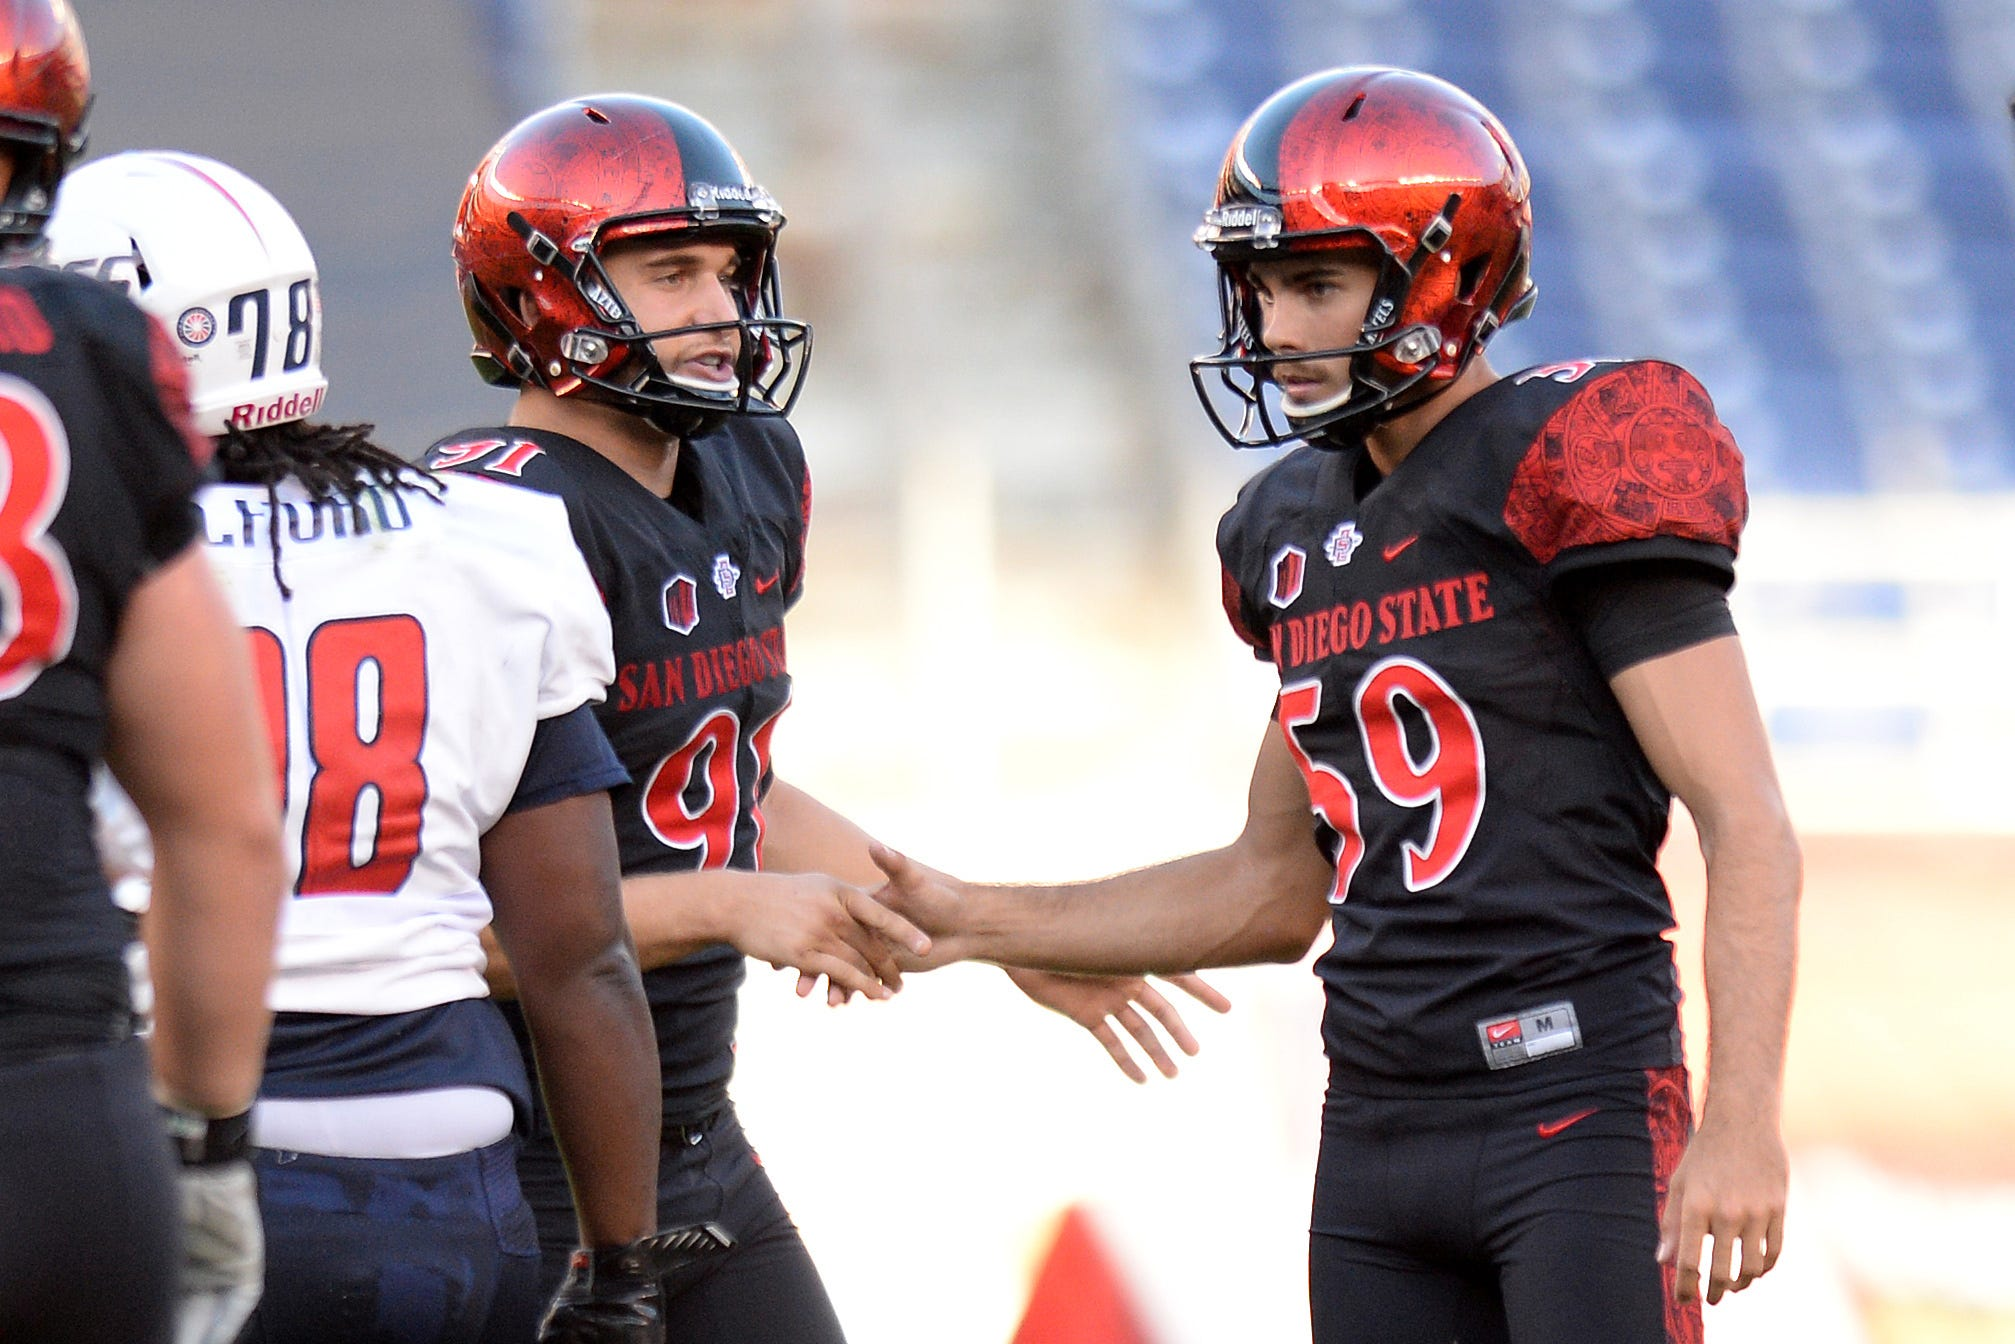 San Diego State Aztecs punter Tanner Blain (91) congratulates place kicker Donny Hageman (59) after Hageman made a field goal during the second quarter against the South Alabama Jaguars at Qualcomm Stadium on Sep 19, 2015.